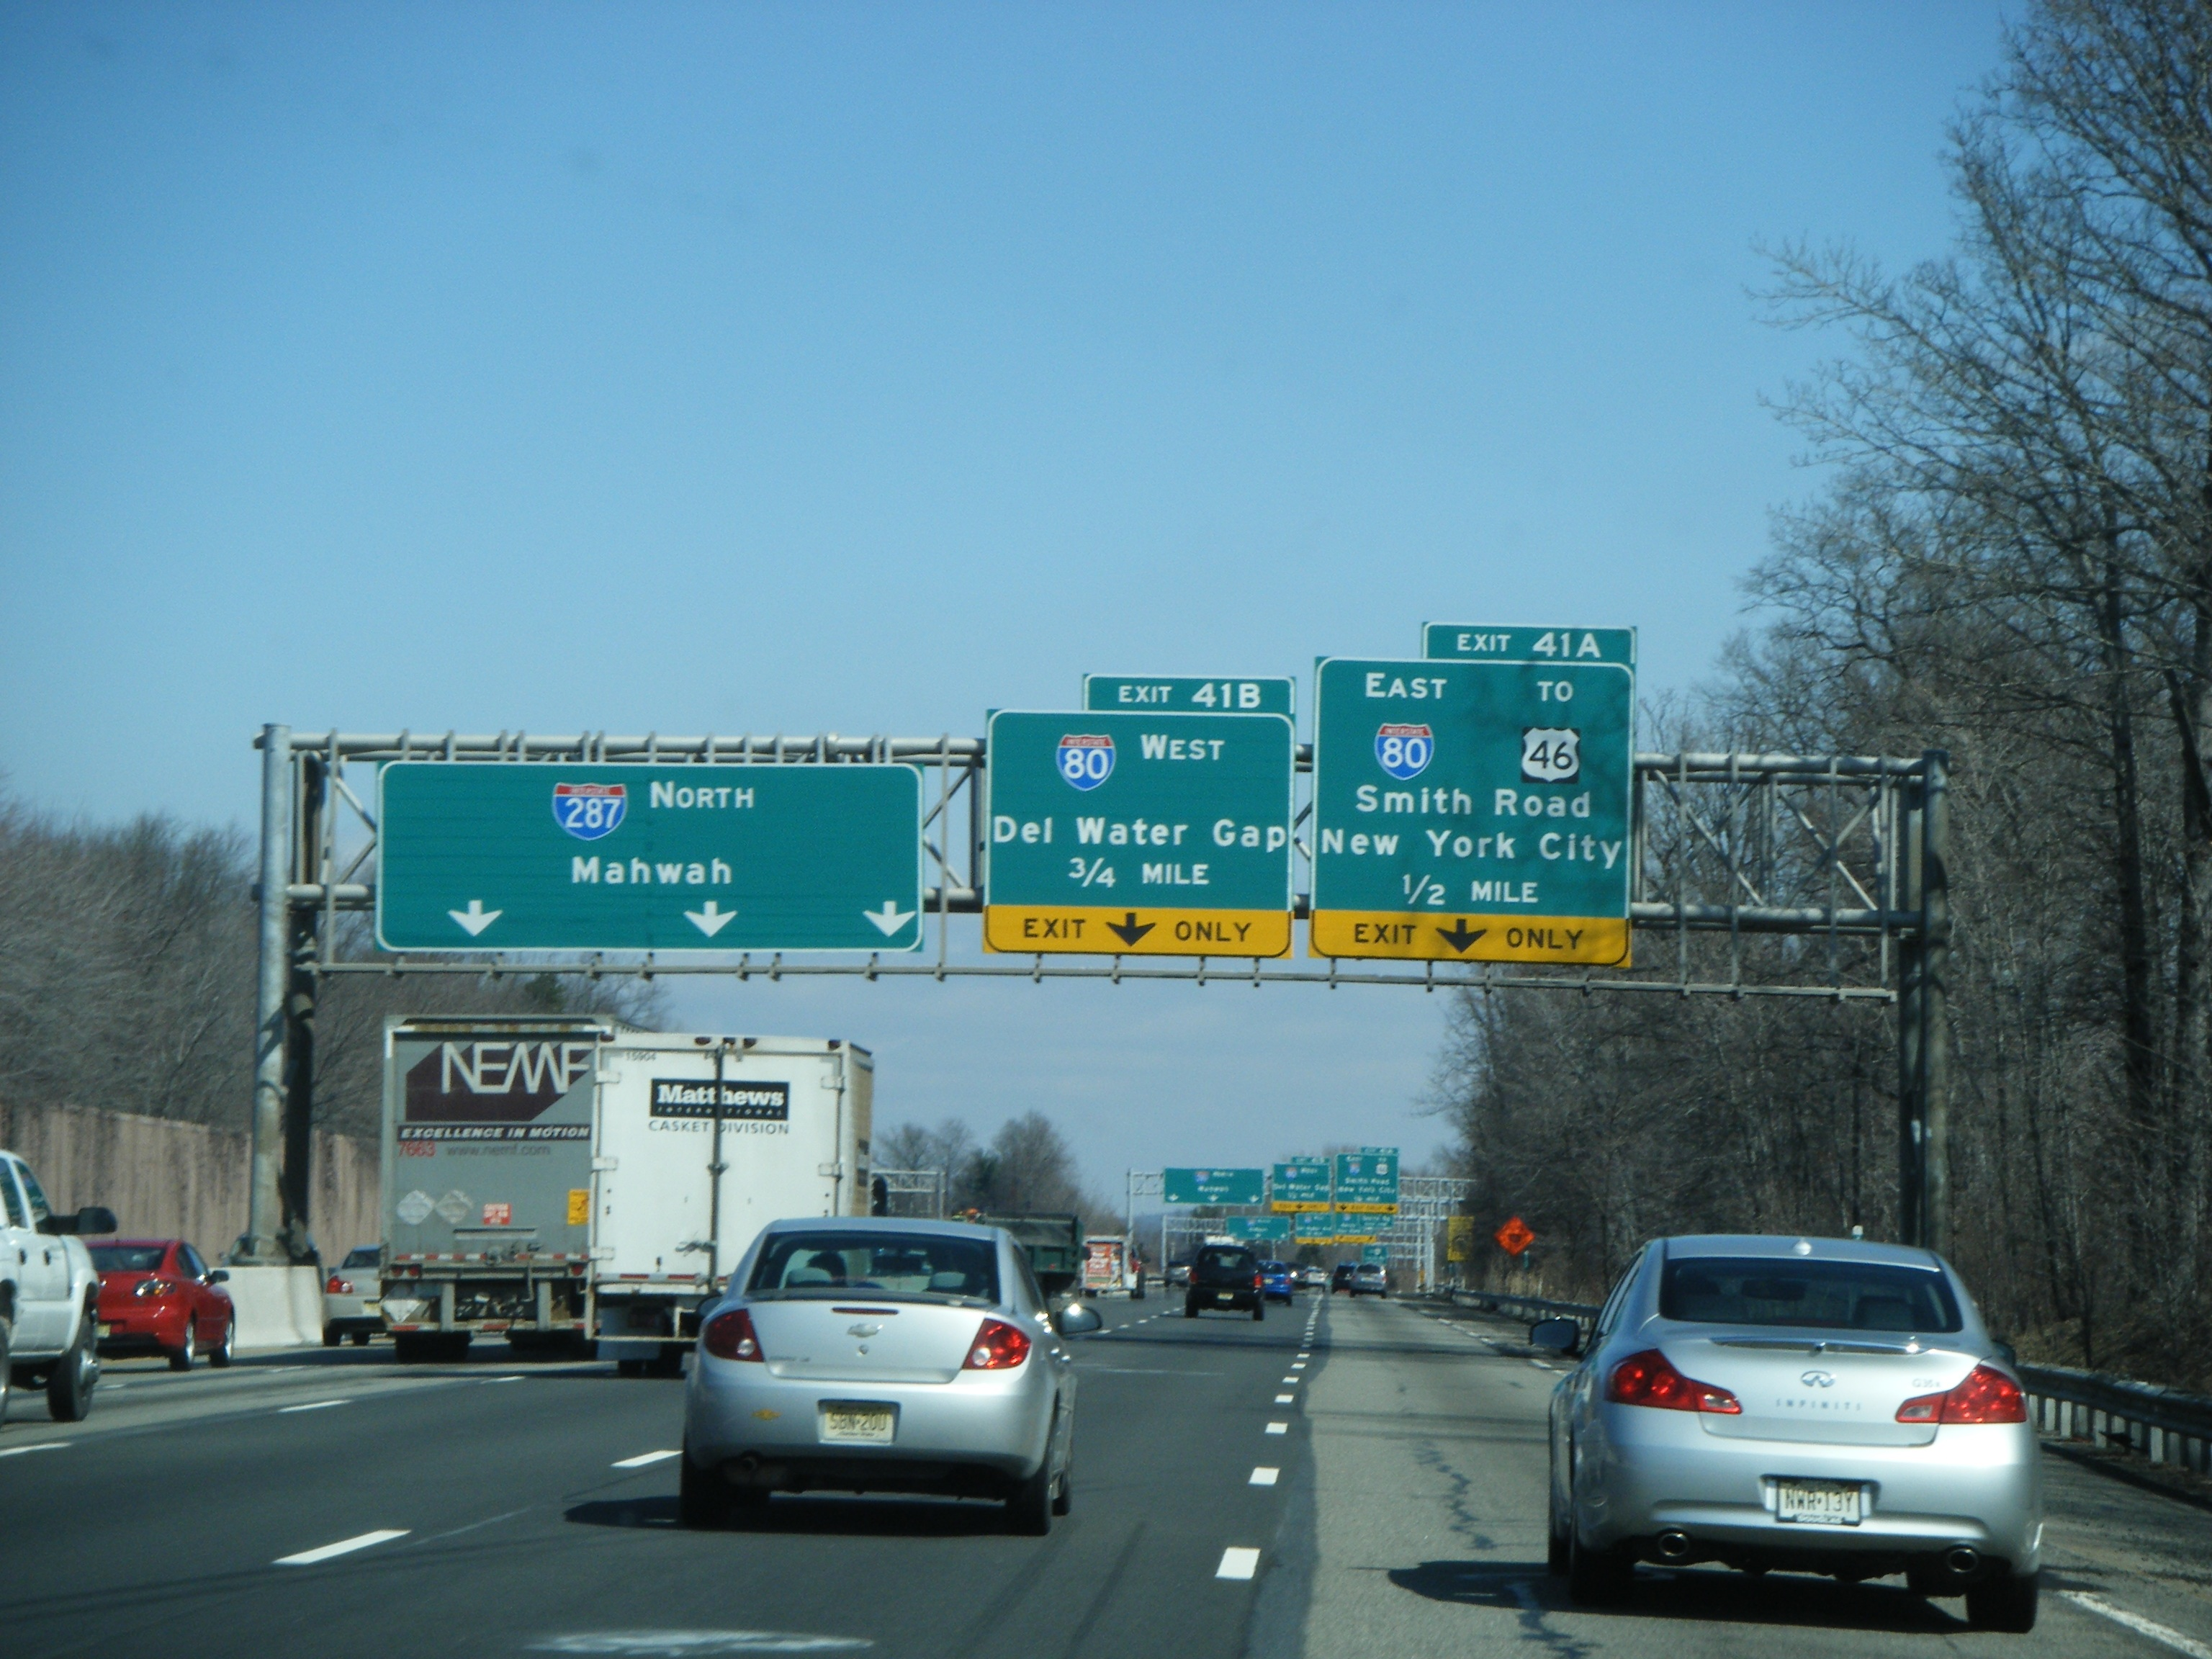 File:I-287 NB 0.5 miles to I-80.jpg